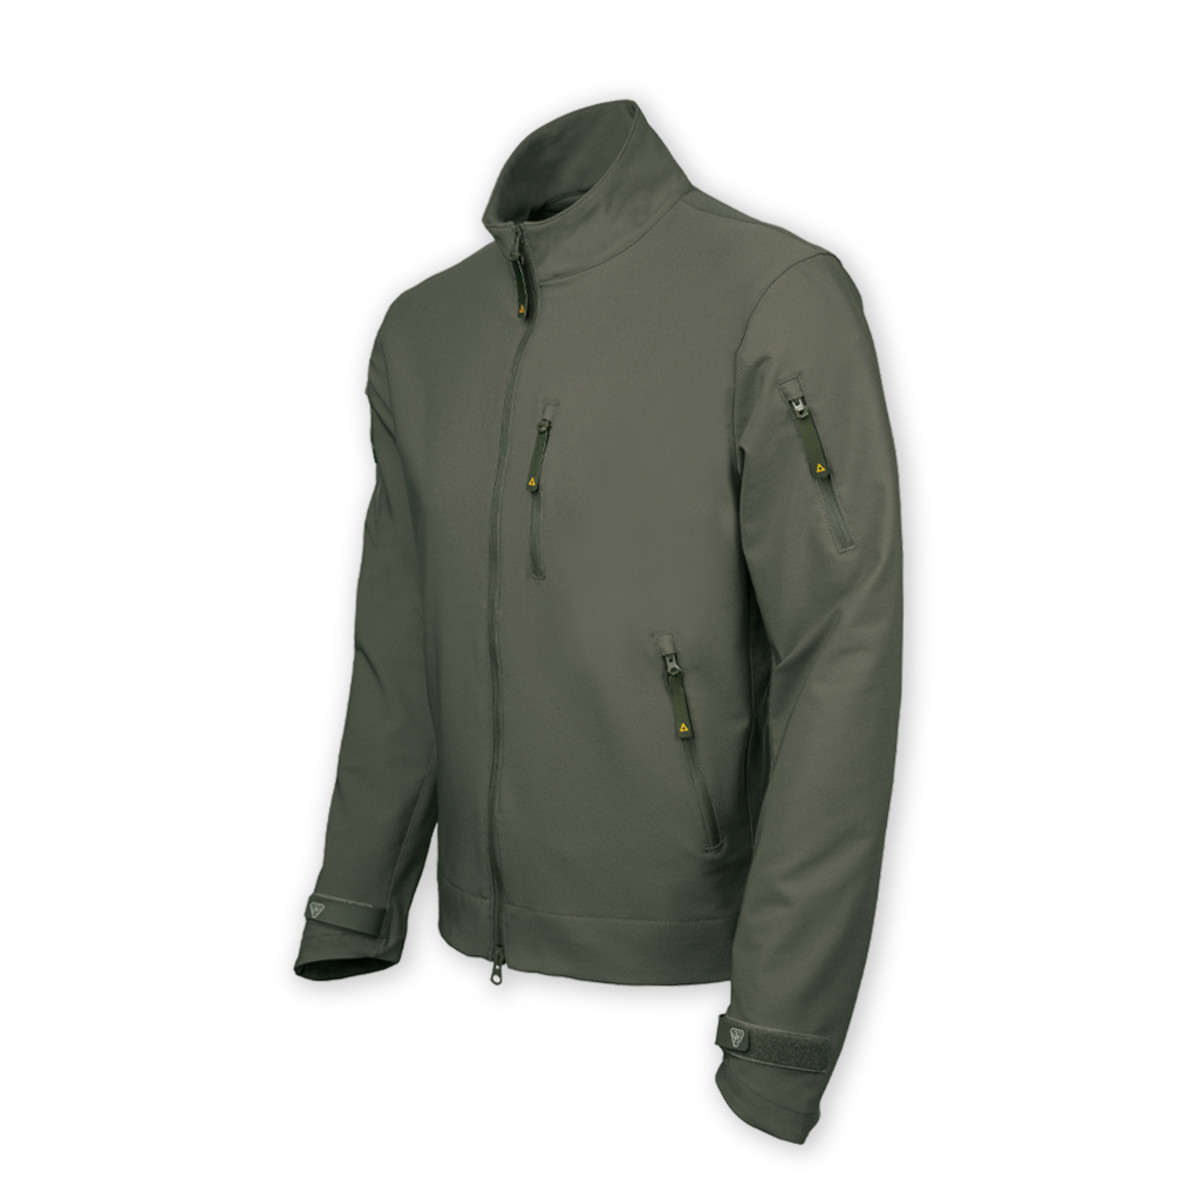 Prometheus Design Werx Invictus Jacket